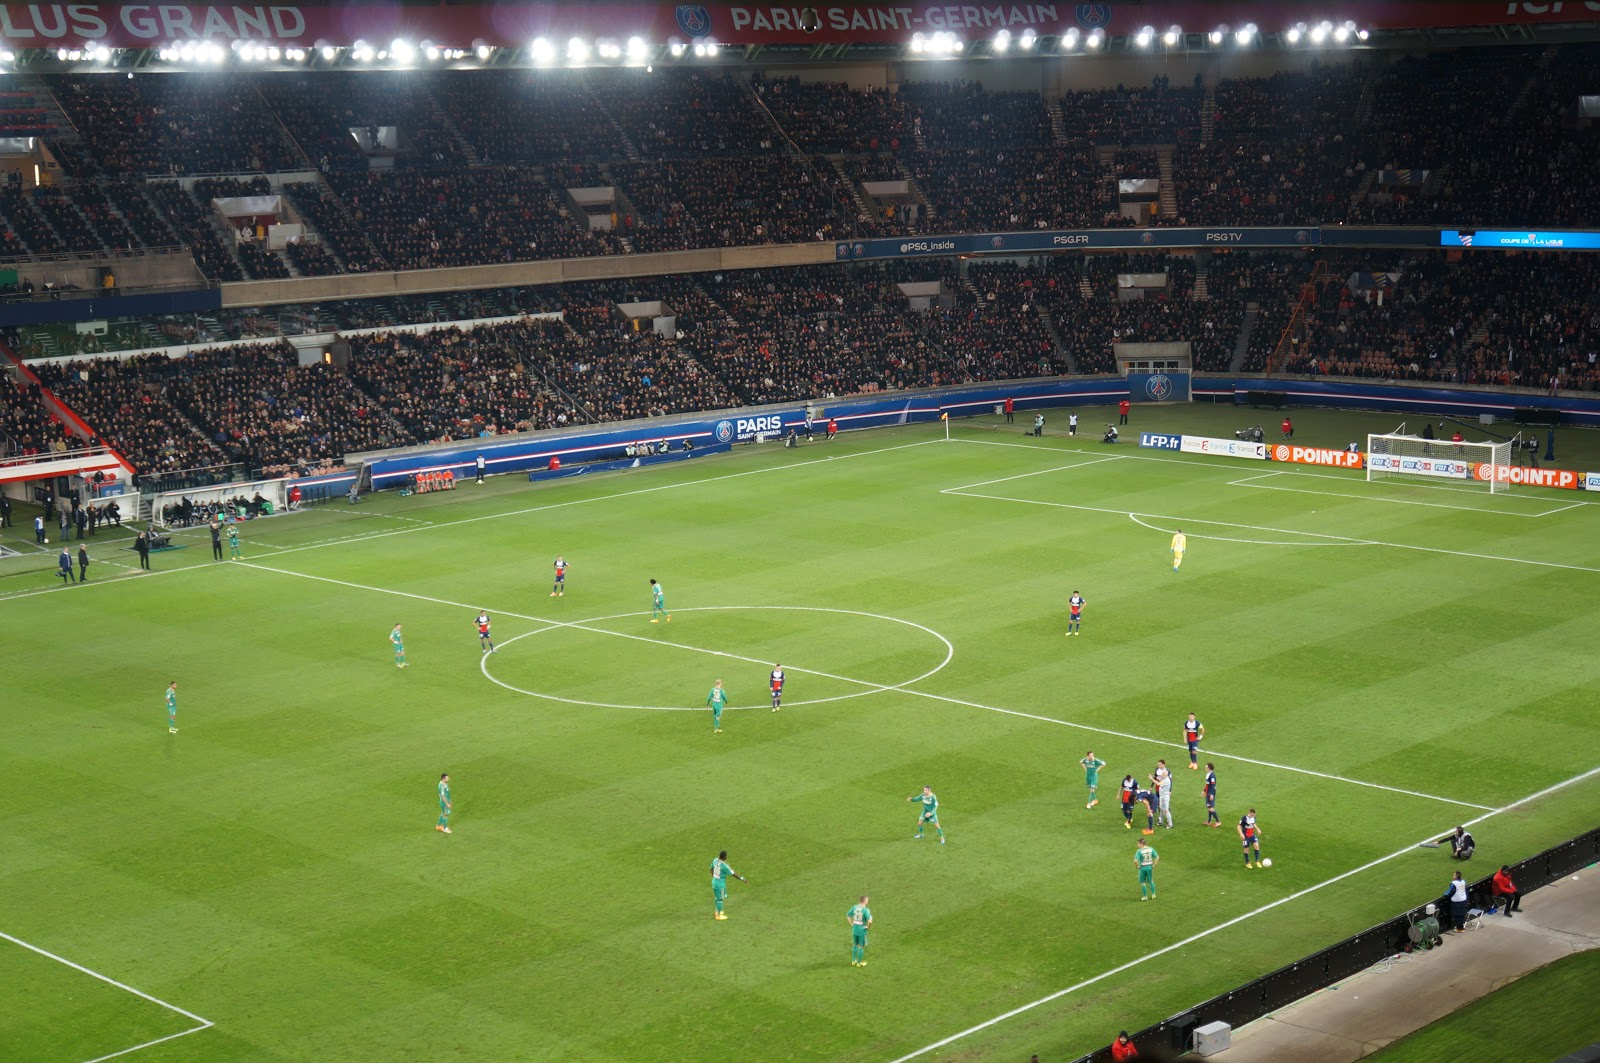 Allez paris saint germain parc des princes psg ma - Parc des princes porte de saint cloud ...